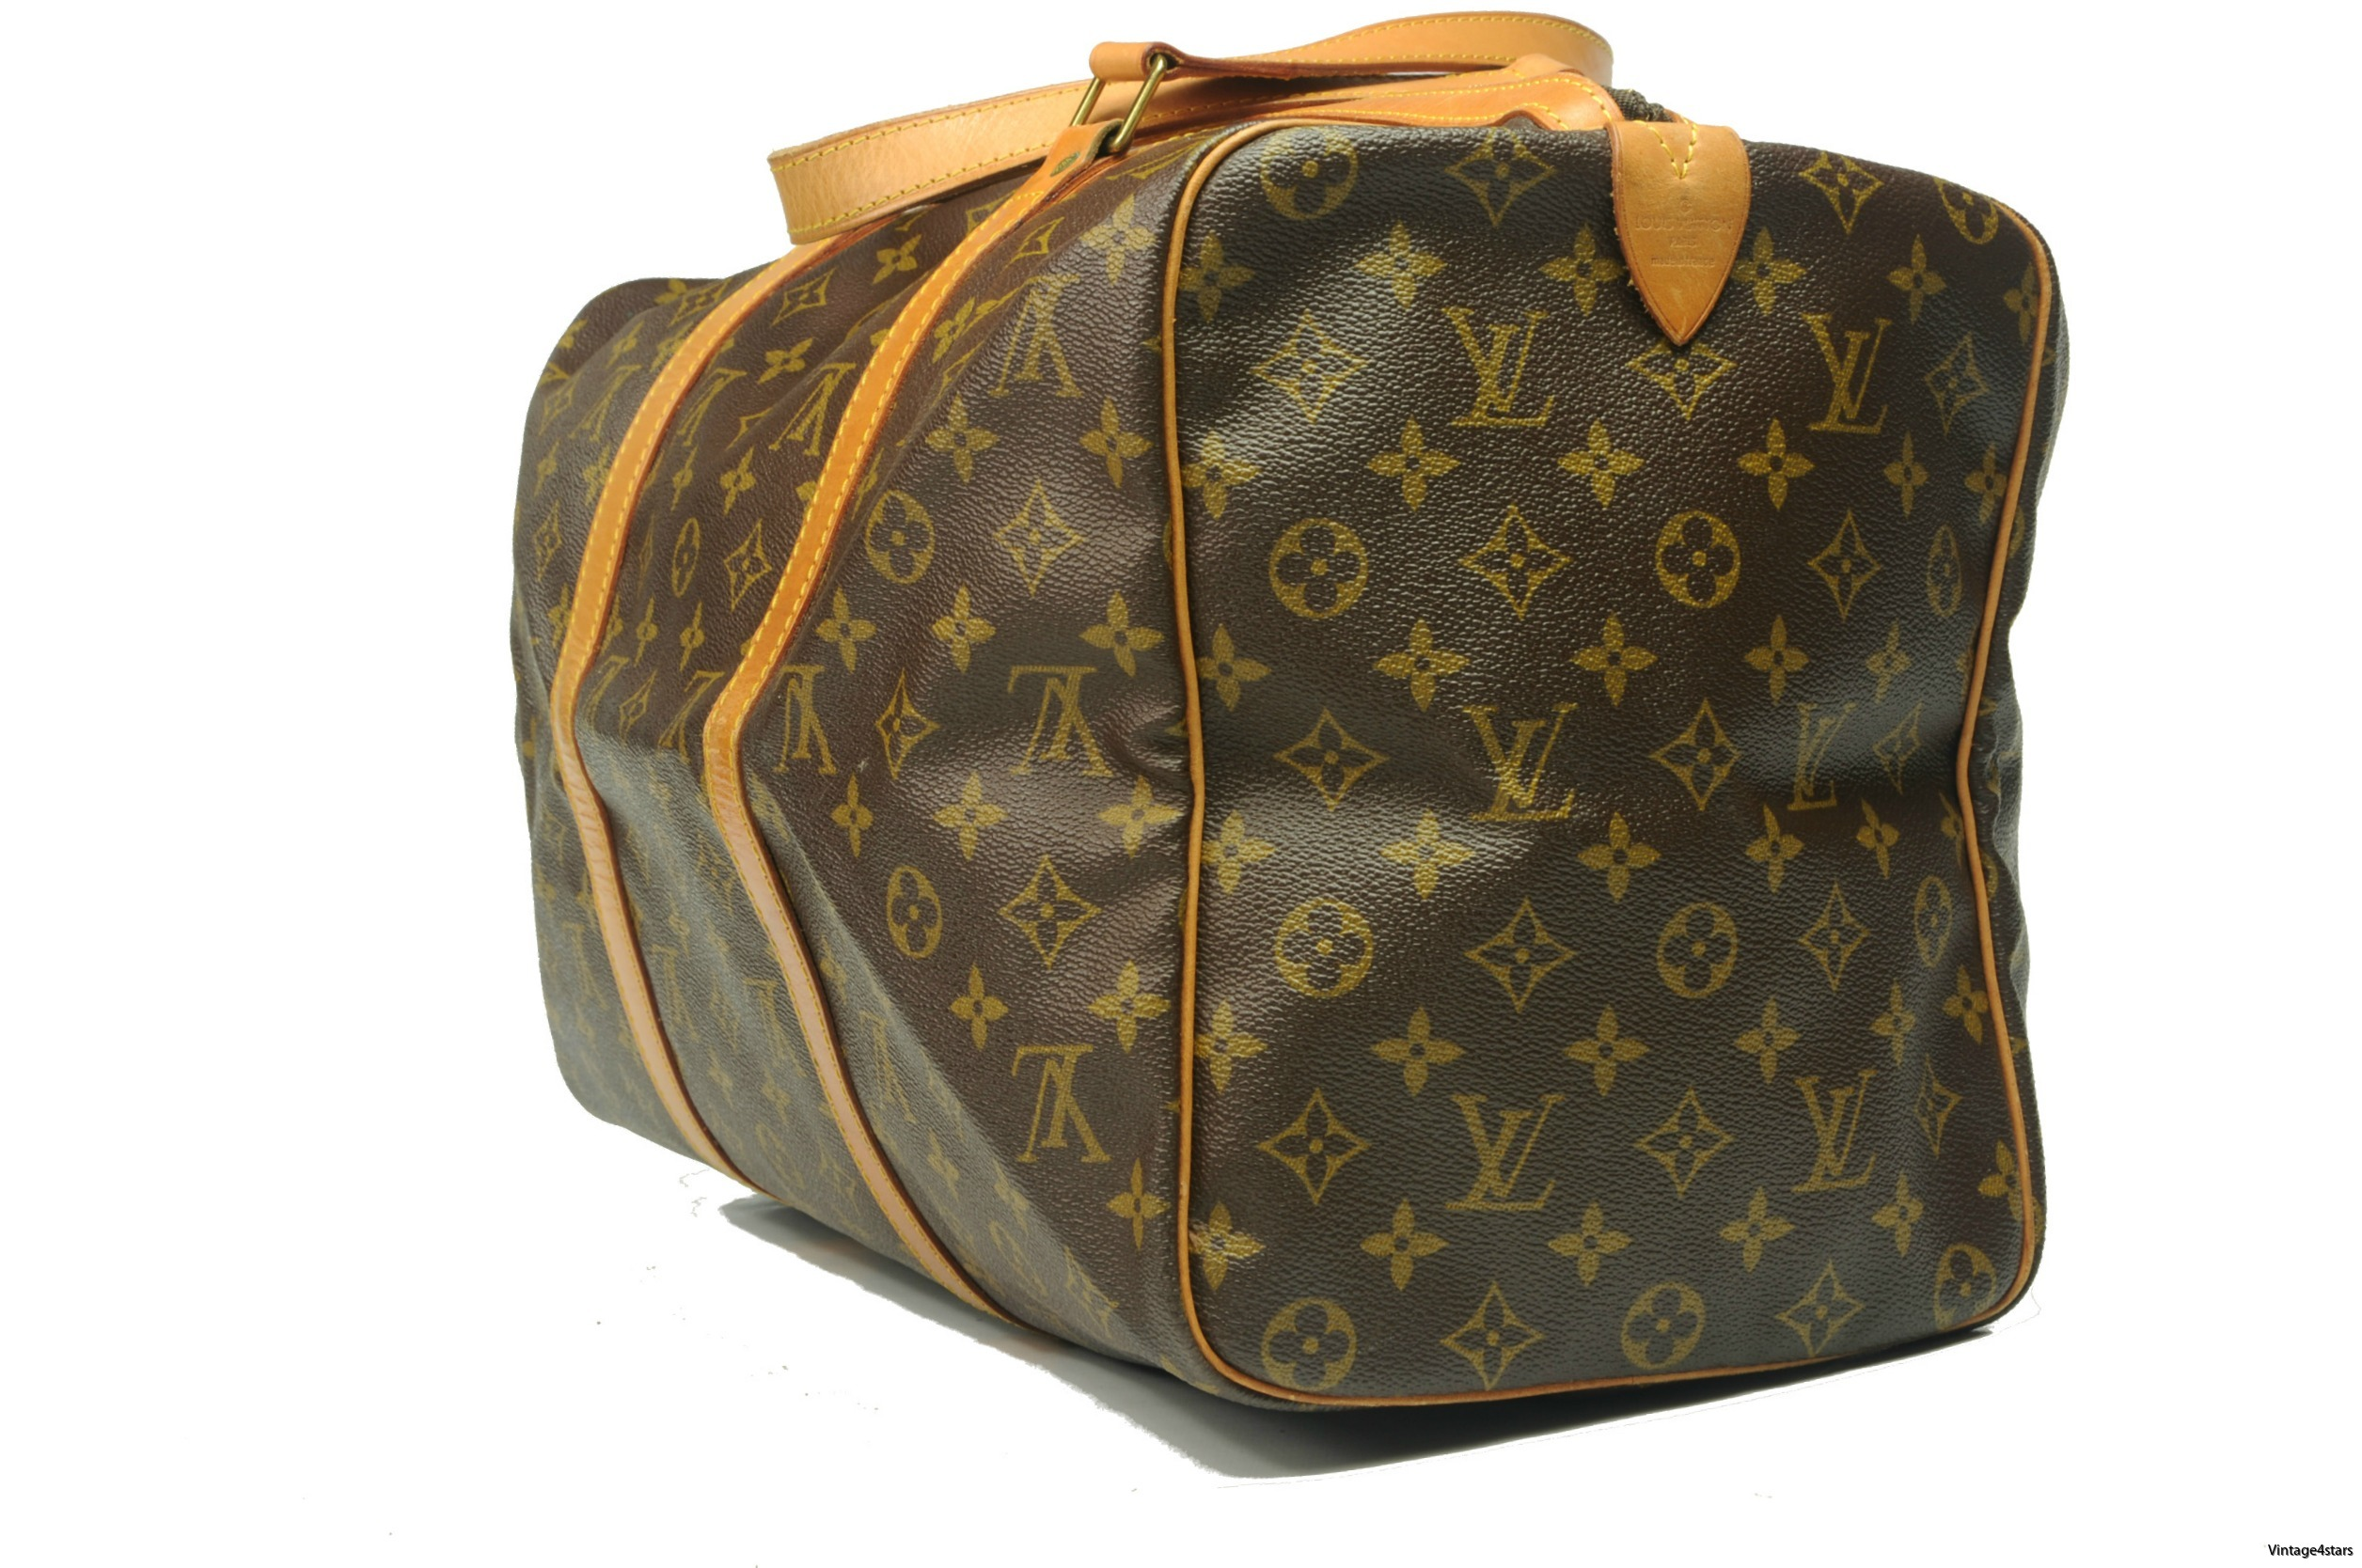 Louis Vuitton Sac Souple 45 2a